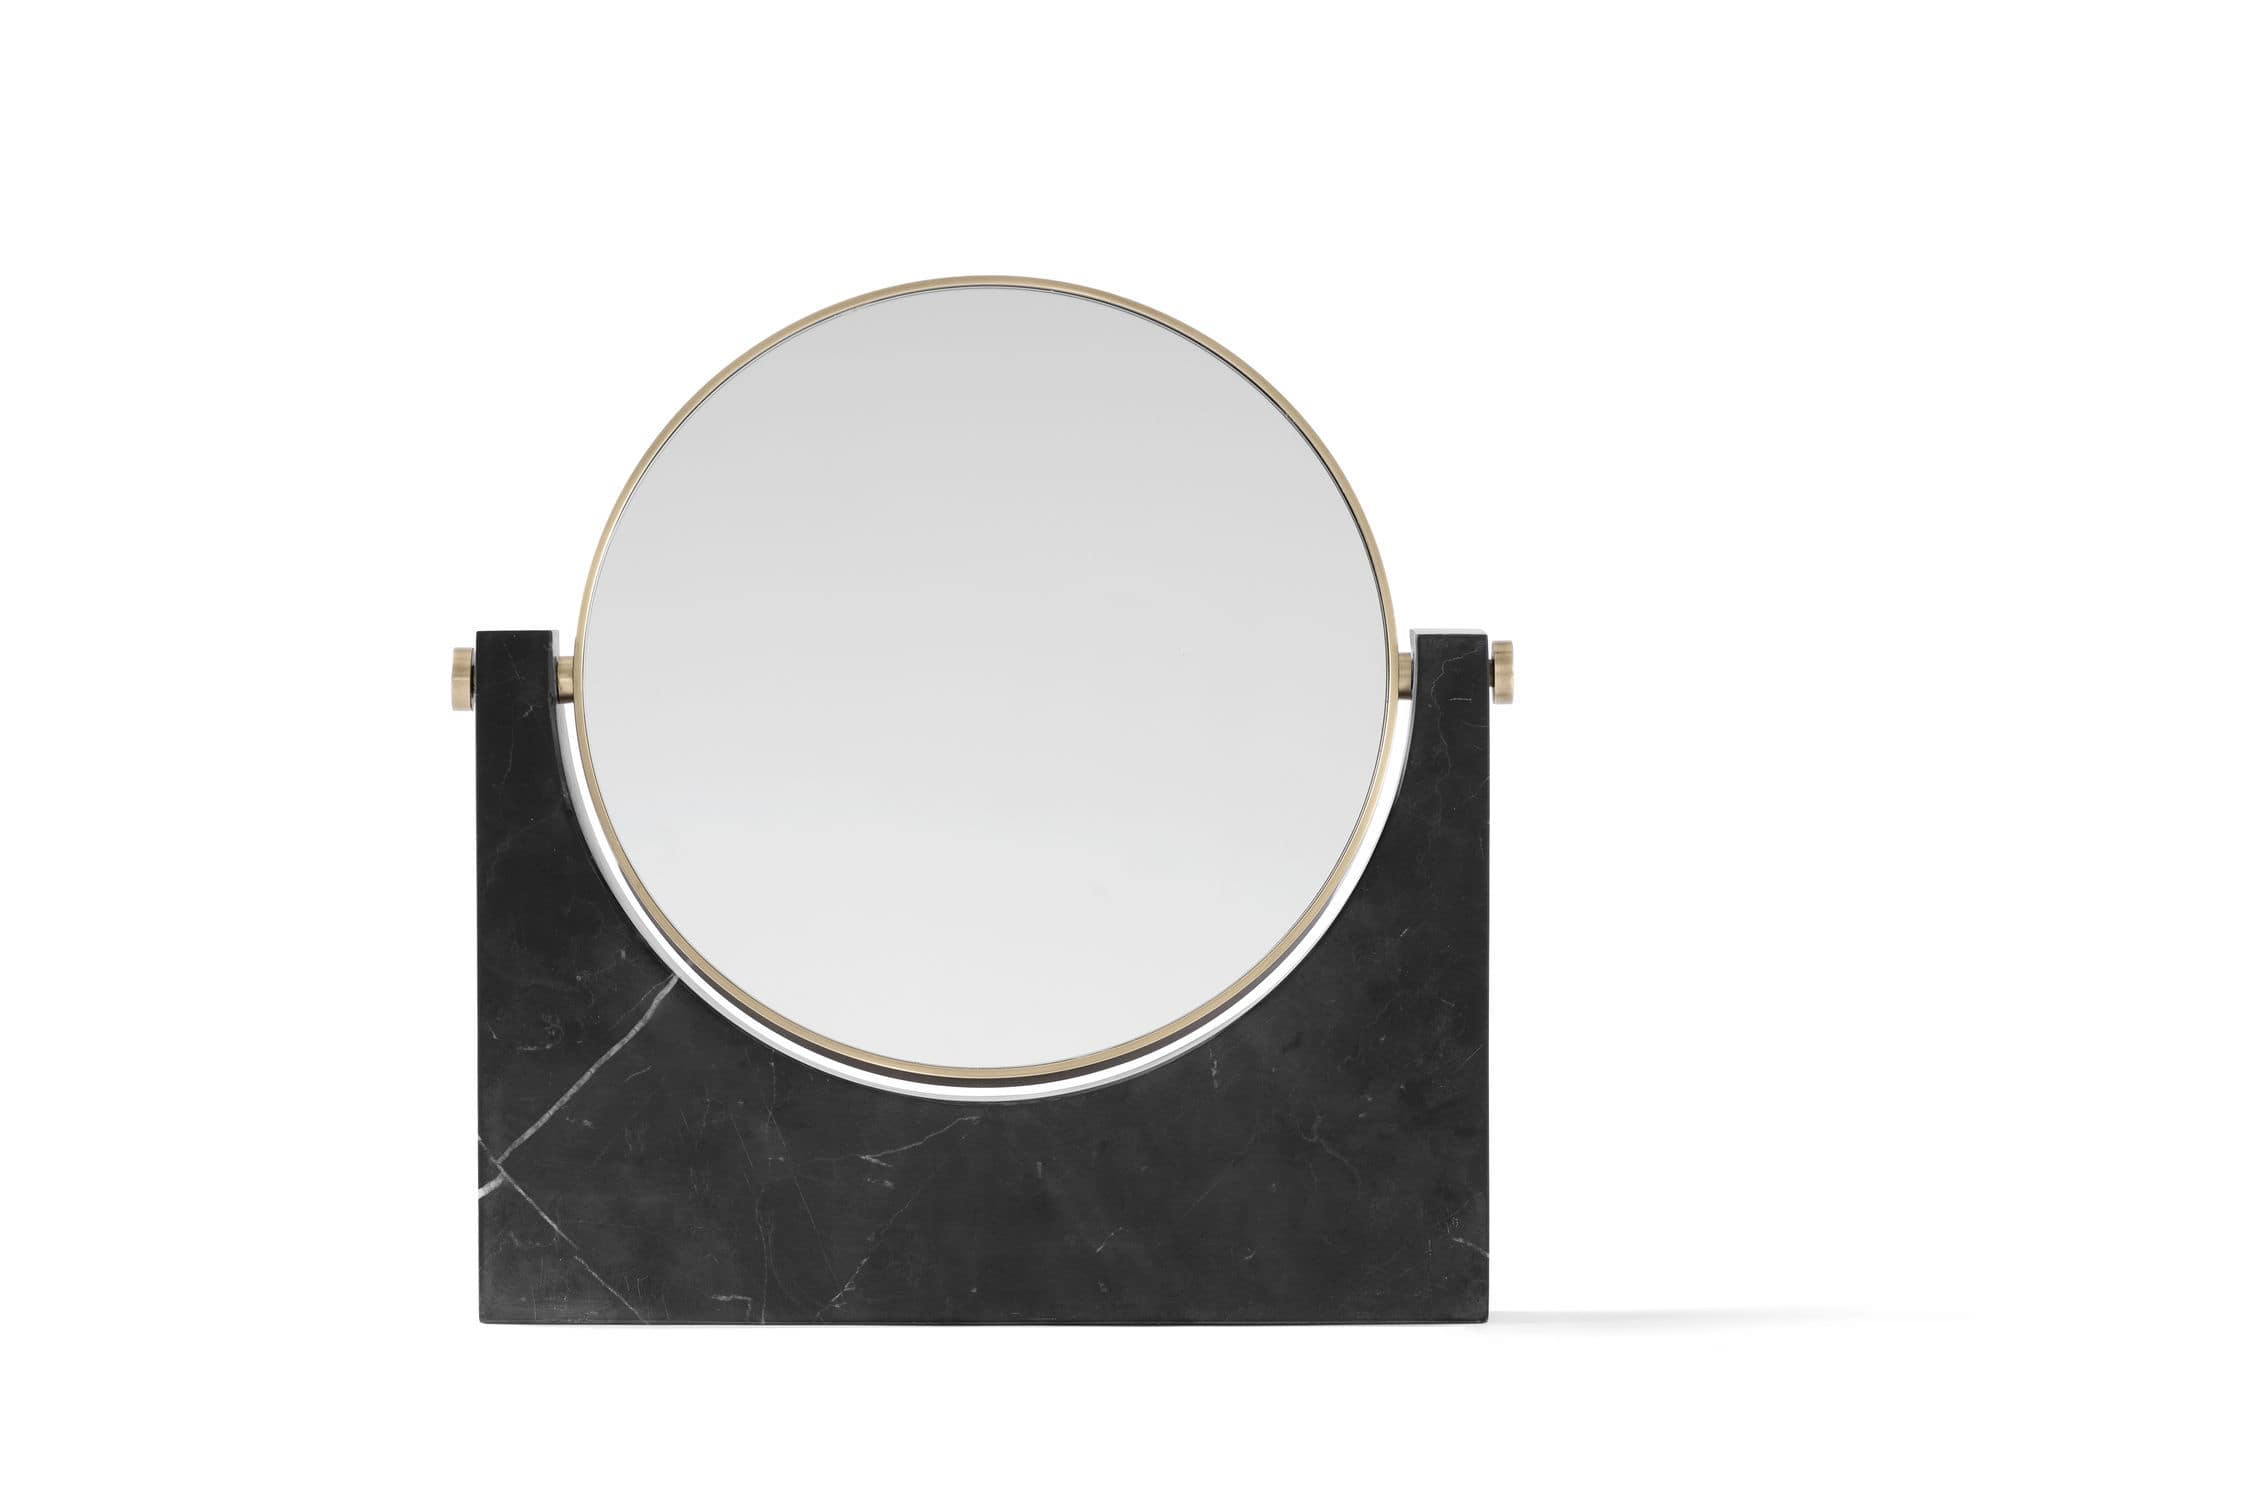 Miroir poser id es de d coration int rieure french decor for Miroir in french